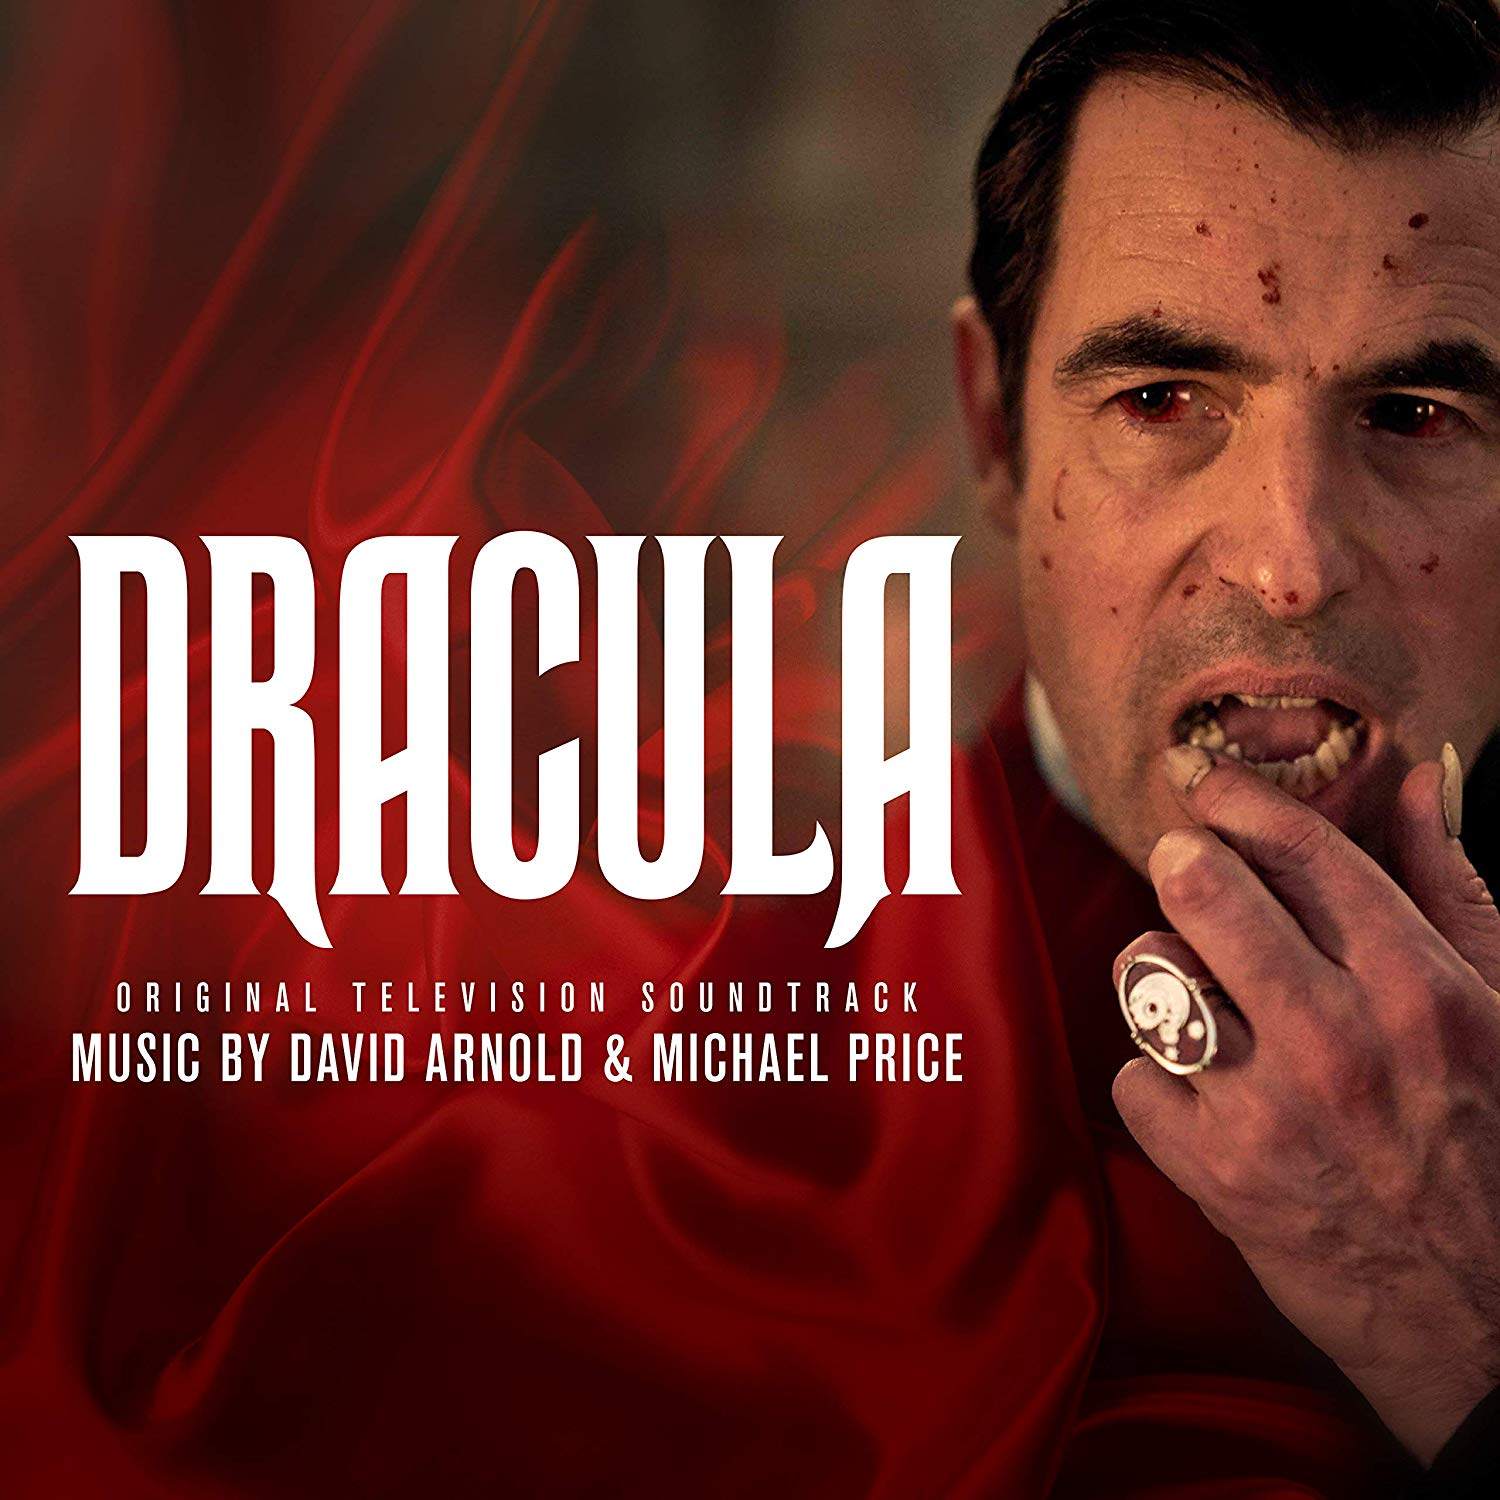 Dracula - Original TV series soundtrack (2019)